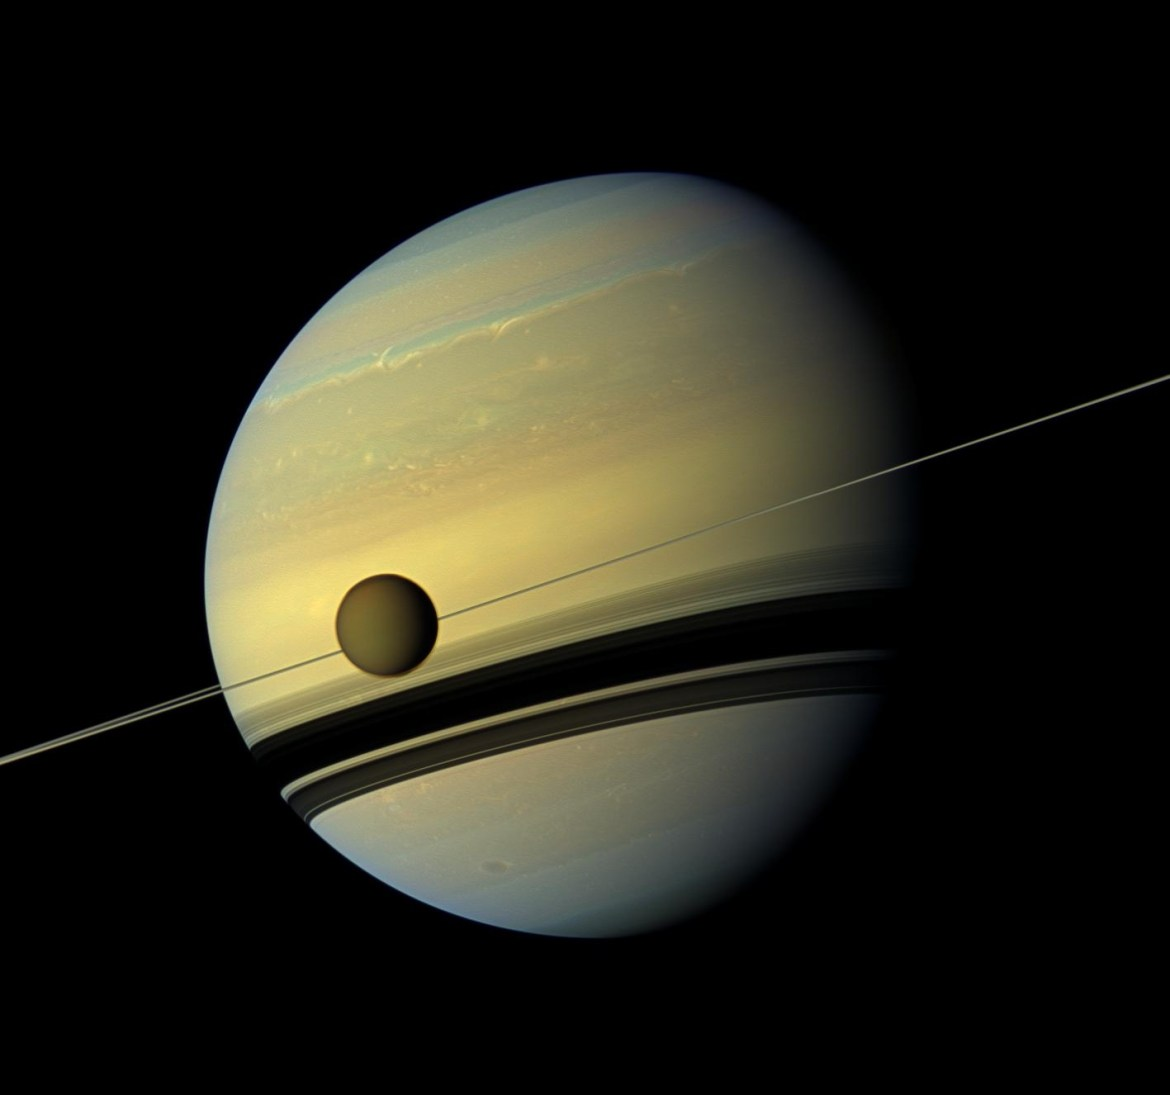 Titan in front of Saturn as seen by Cassini. (Image credit: NASA)